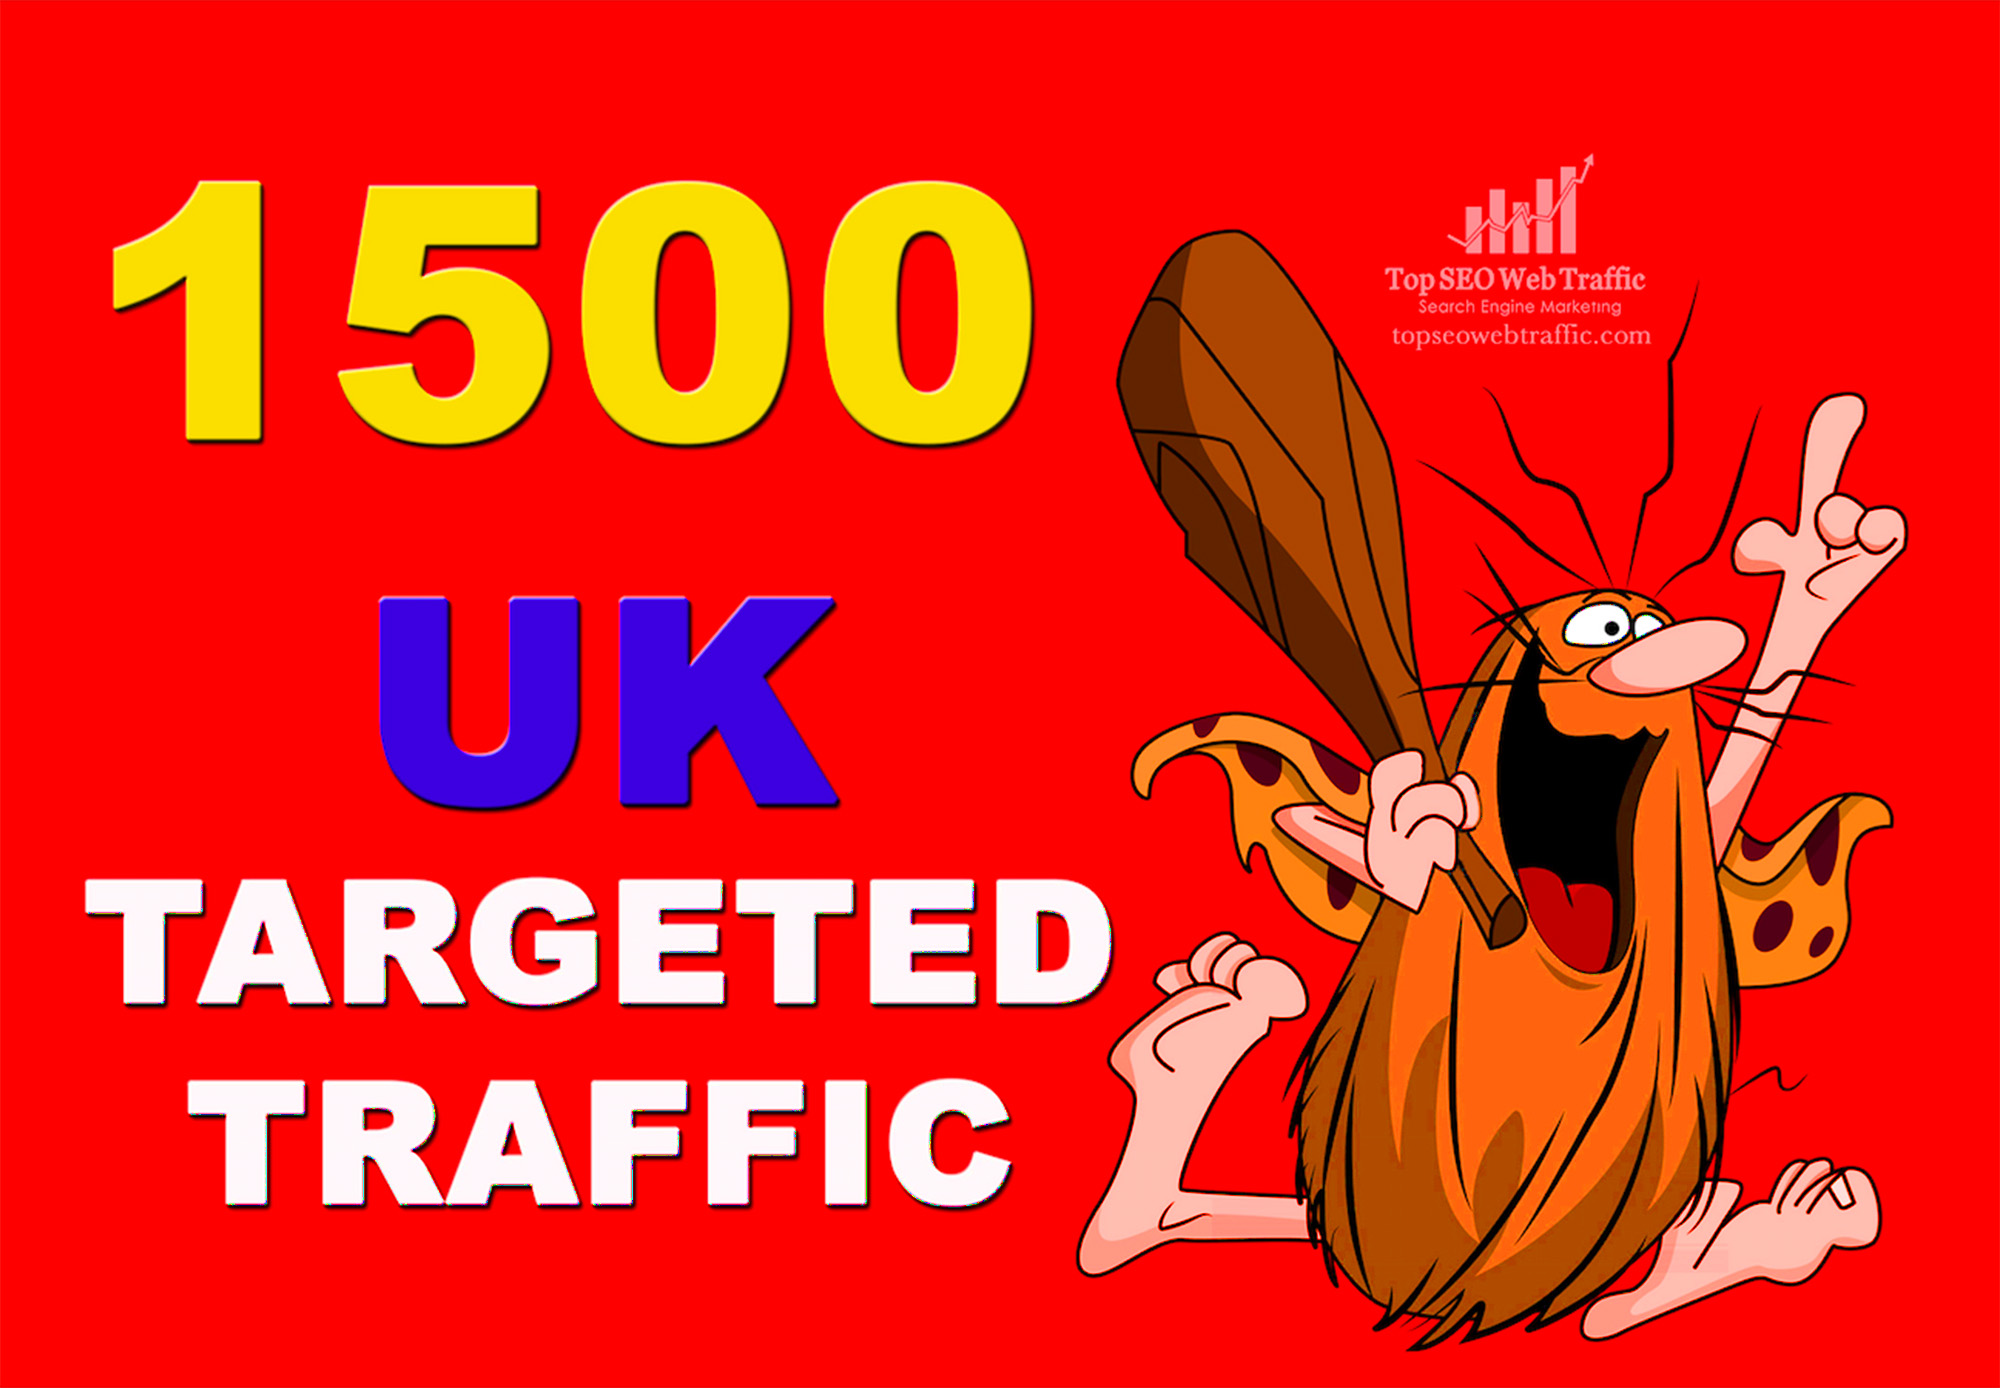 GET 1,500 HIGHT QUALITY UK WEB TRAFFIC VISITORS FOR 3 DAYS